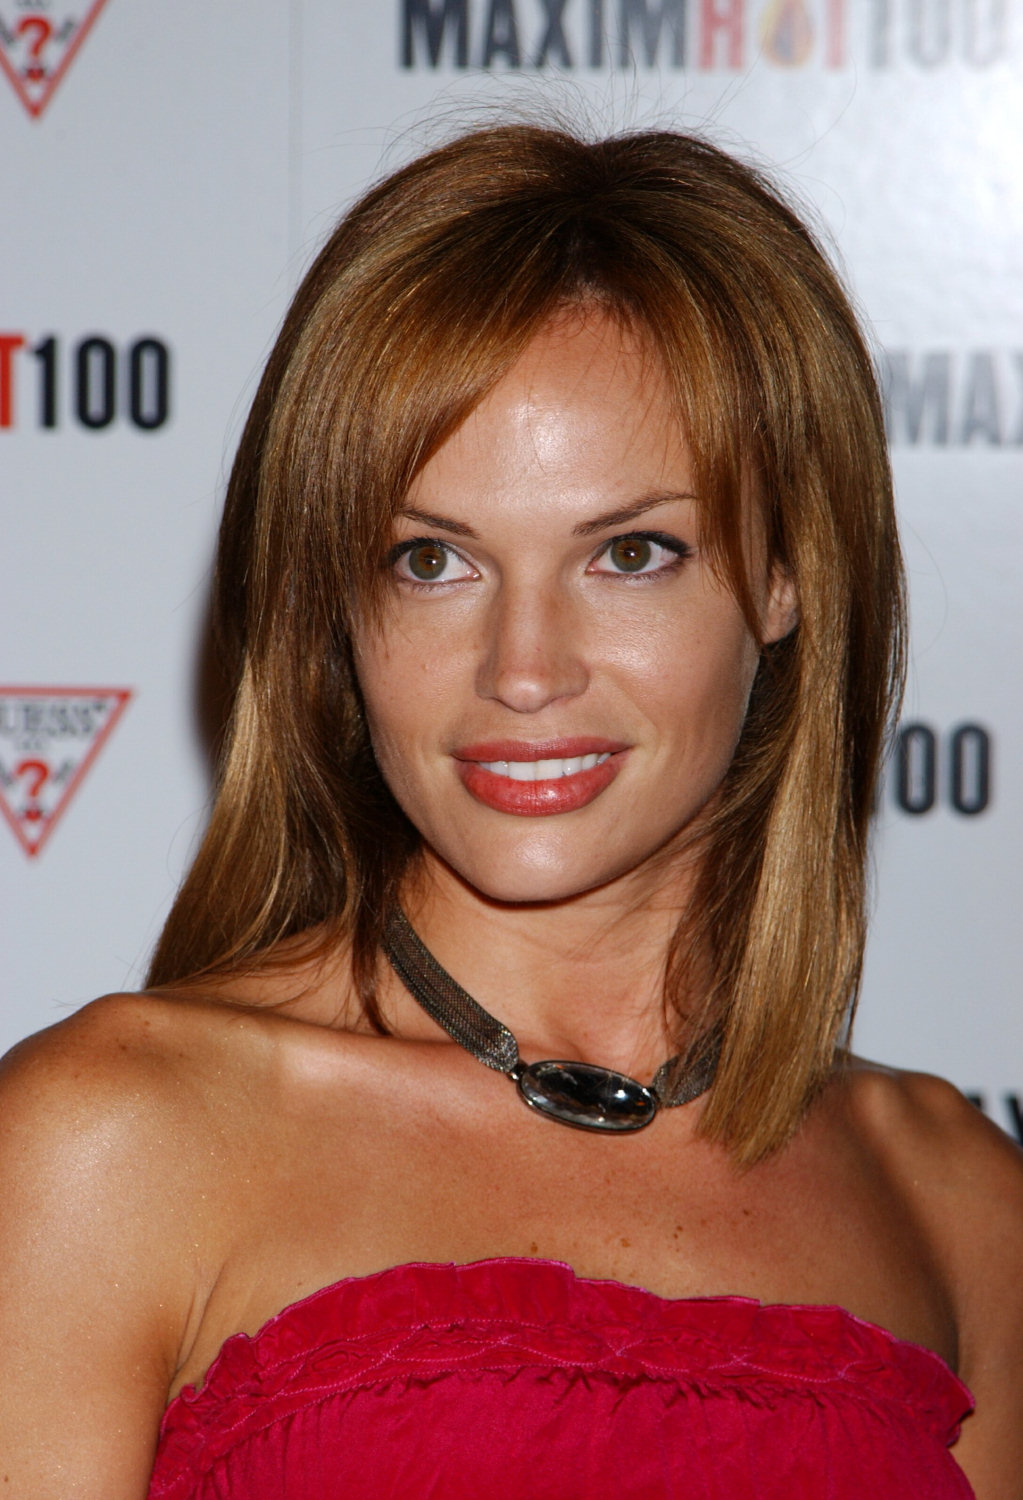 jblafdb5 713808 /Jolene blalock and nude/ || /jolene blalock and nude/